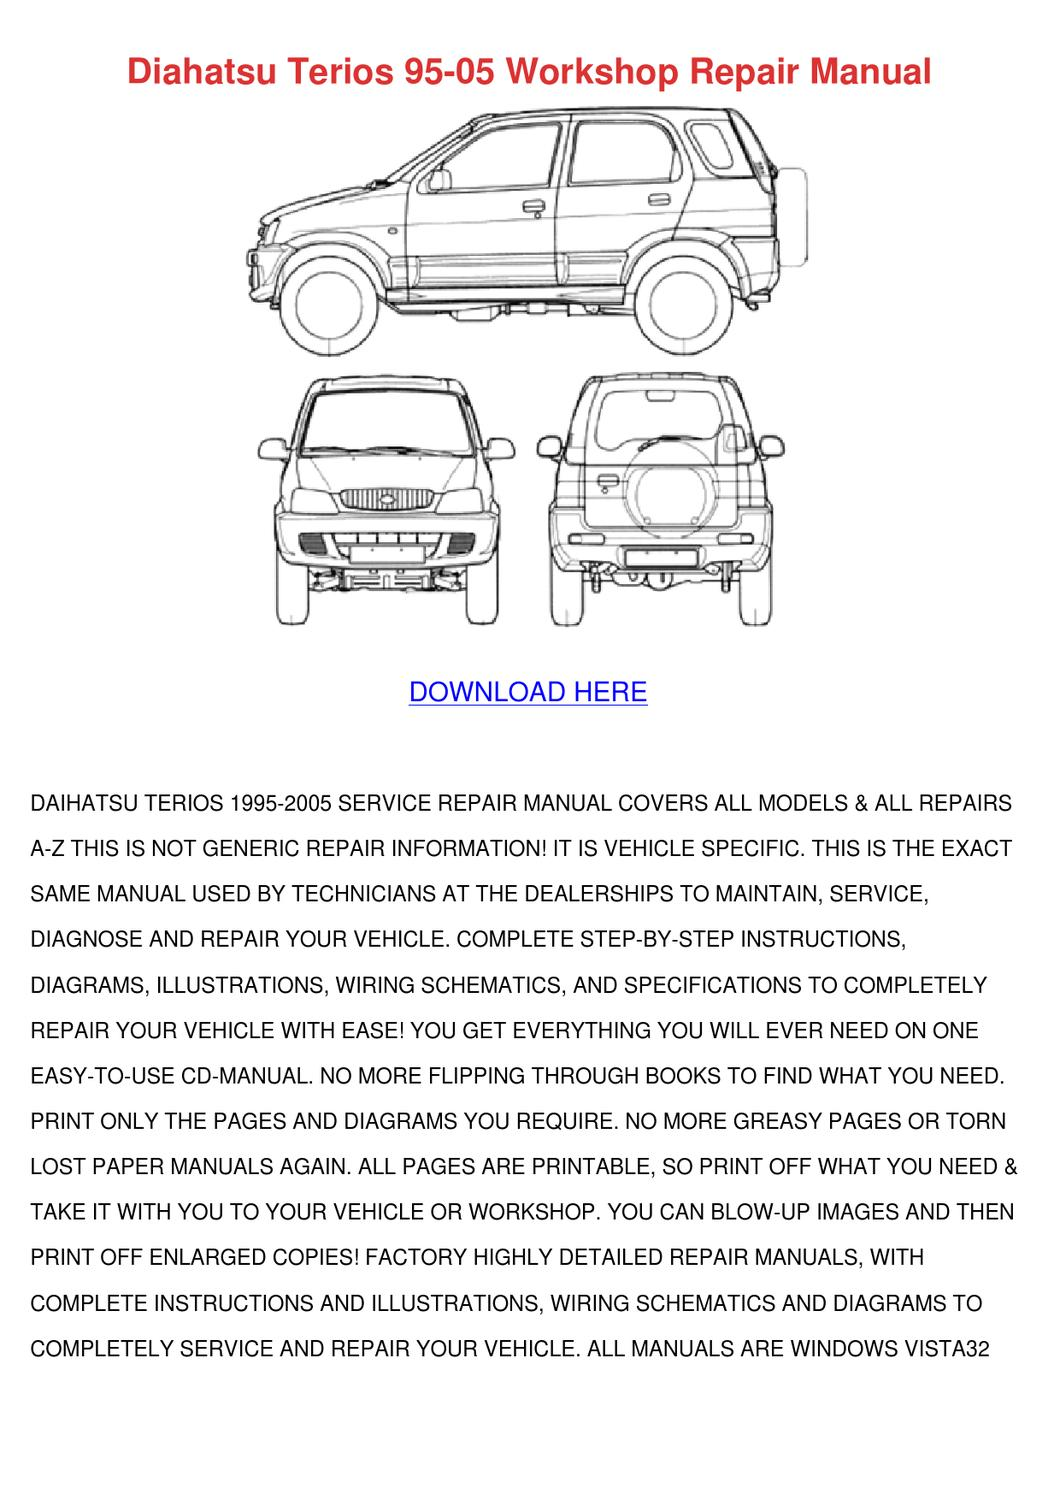 daihatsu sirion electrical diagram